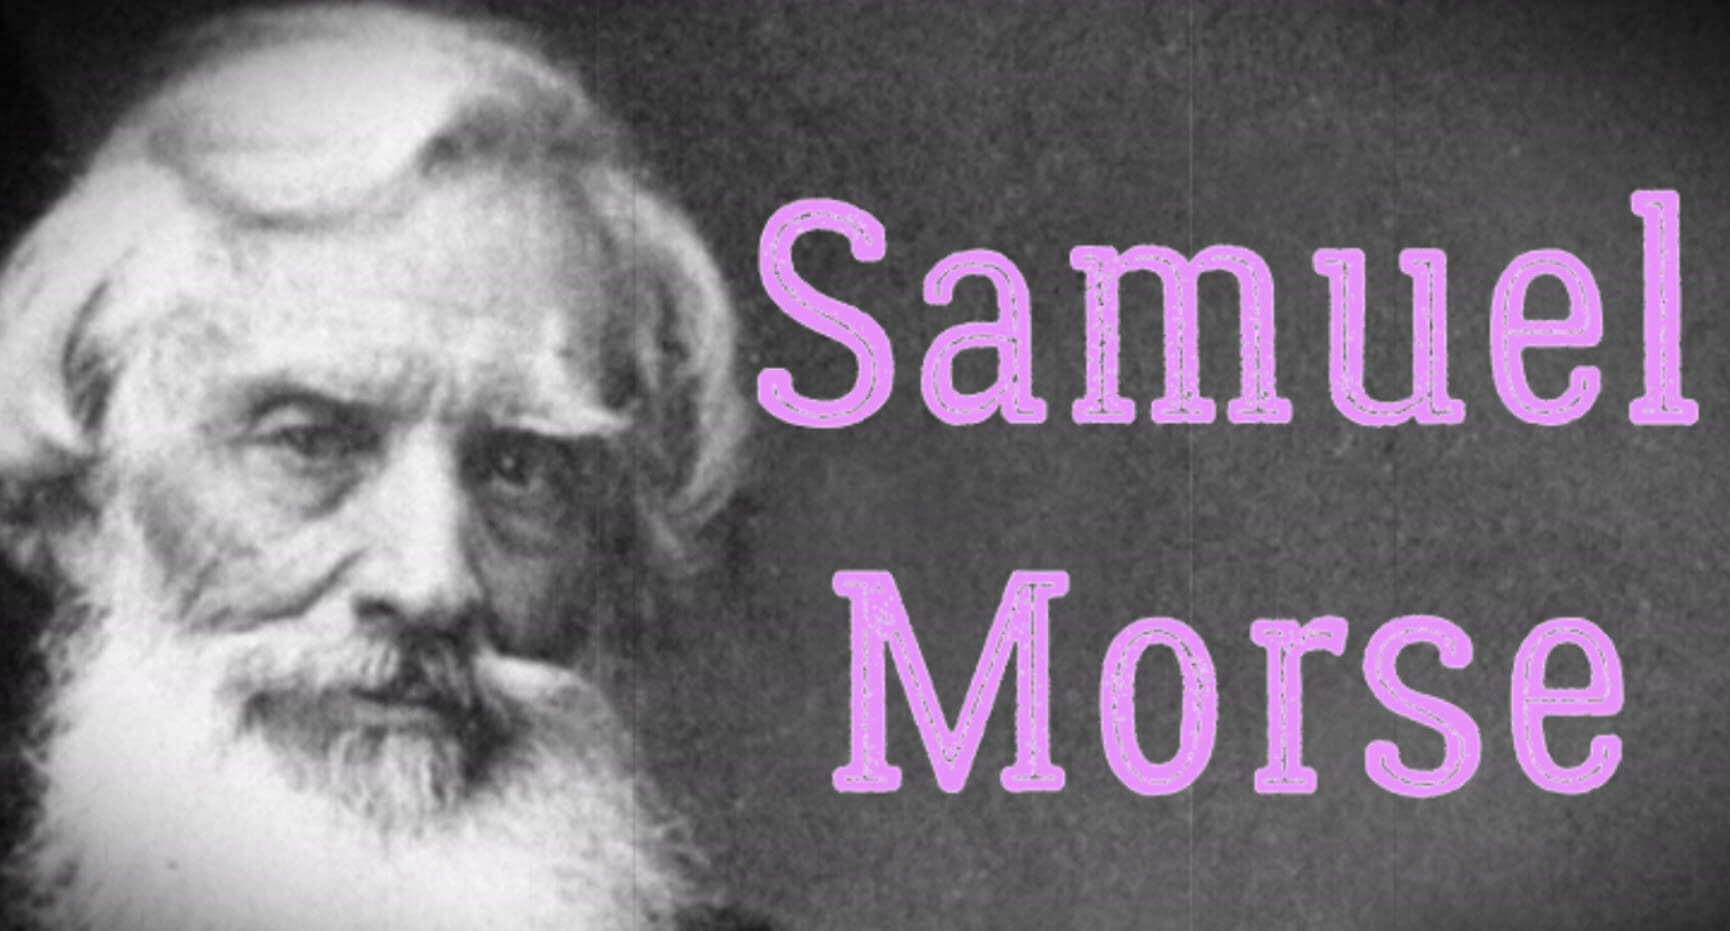 Samuel Morse Biography and Inventions - Invention of the Telegraph